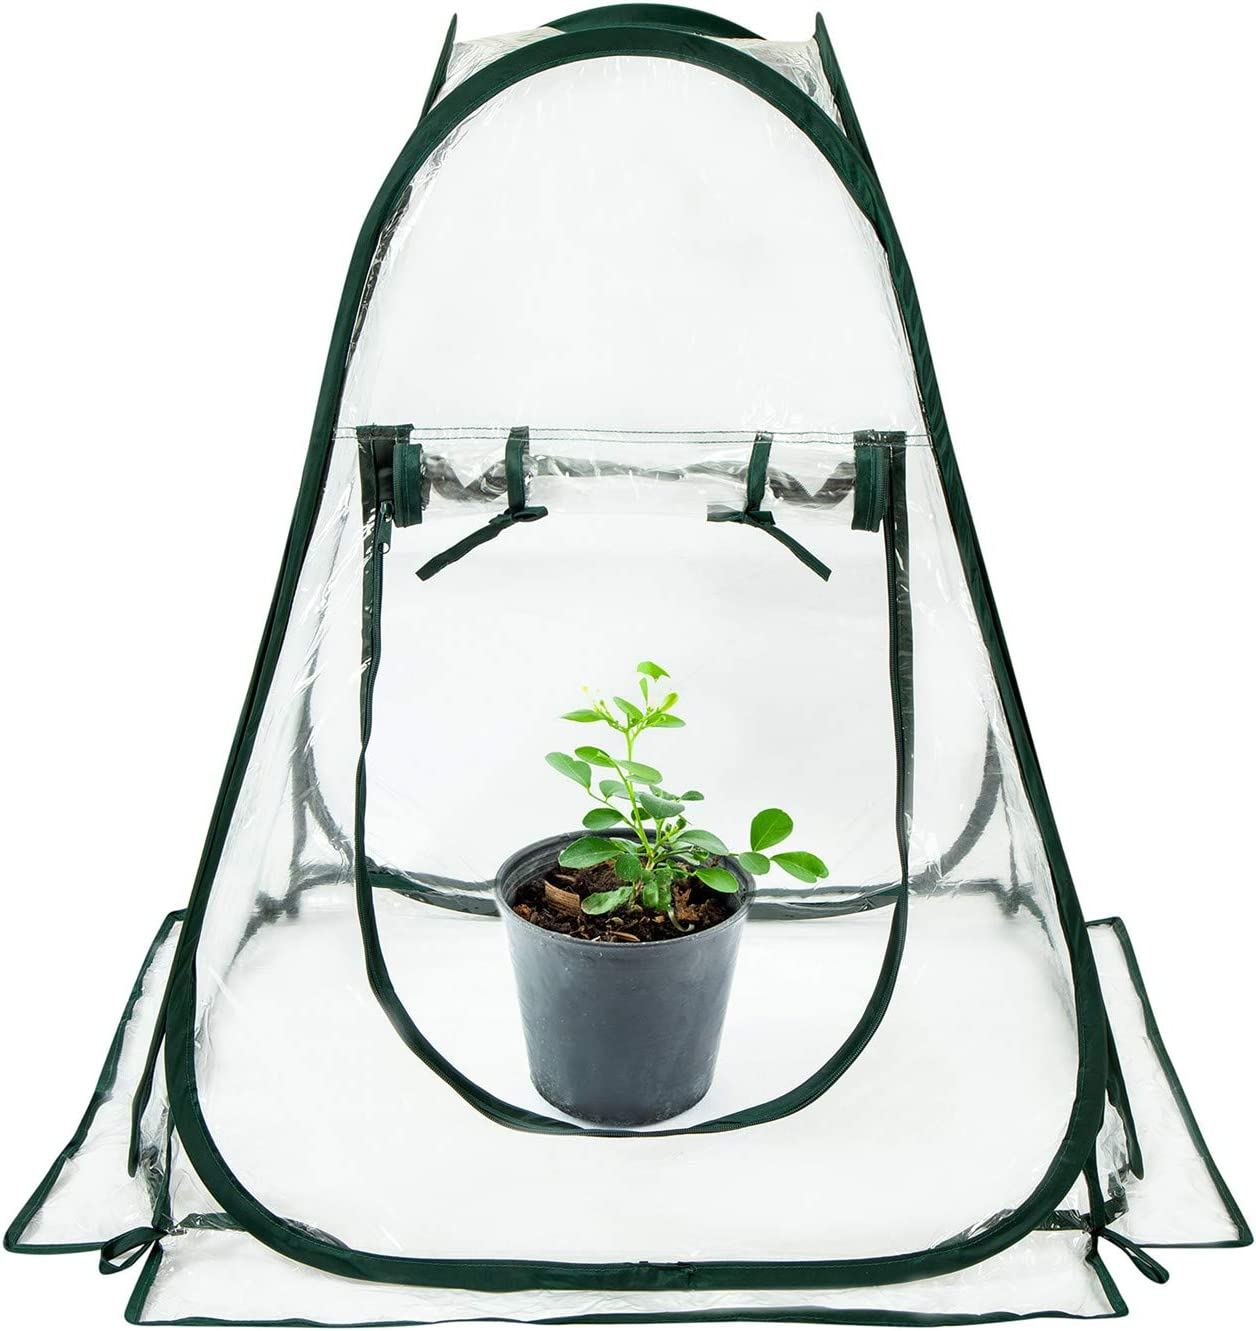 "Comlax Mini Greenhouse Pop up Plant Grow House Portable for Indoor & Outdoor Garden Backyard Flower Pot Cover/Shelter 28""x28""x31"""